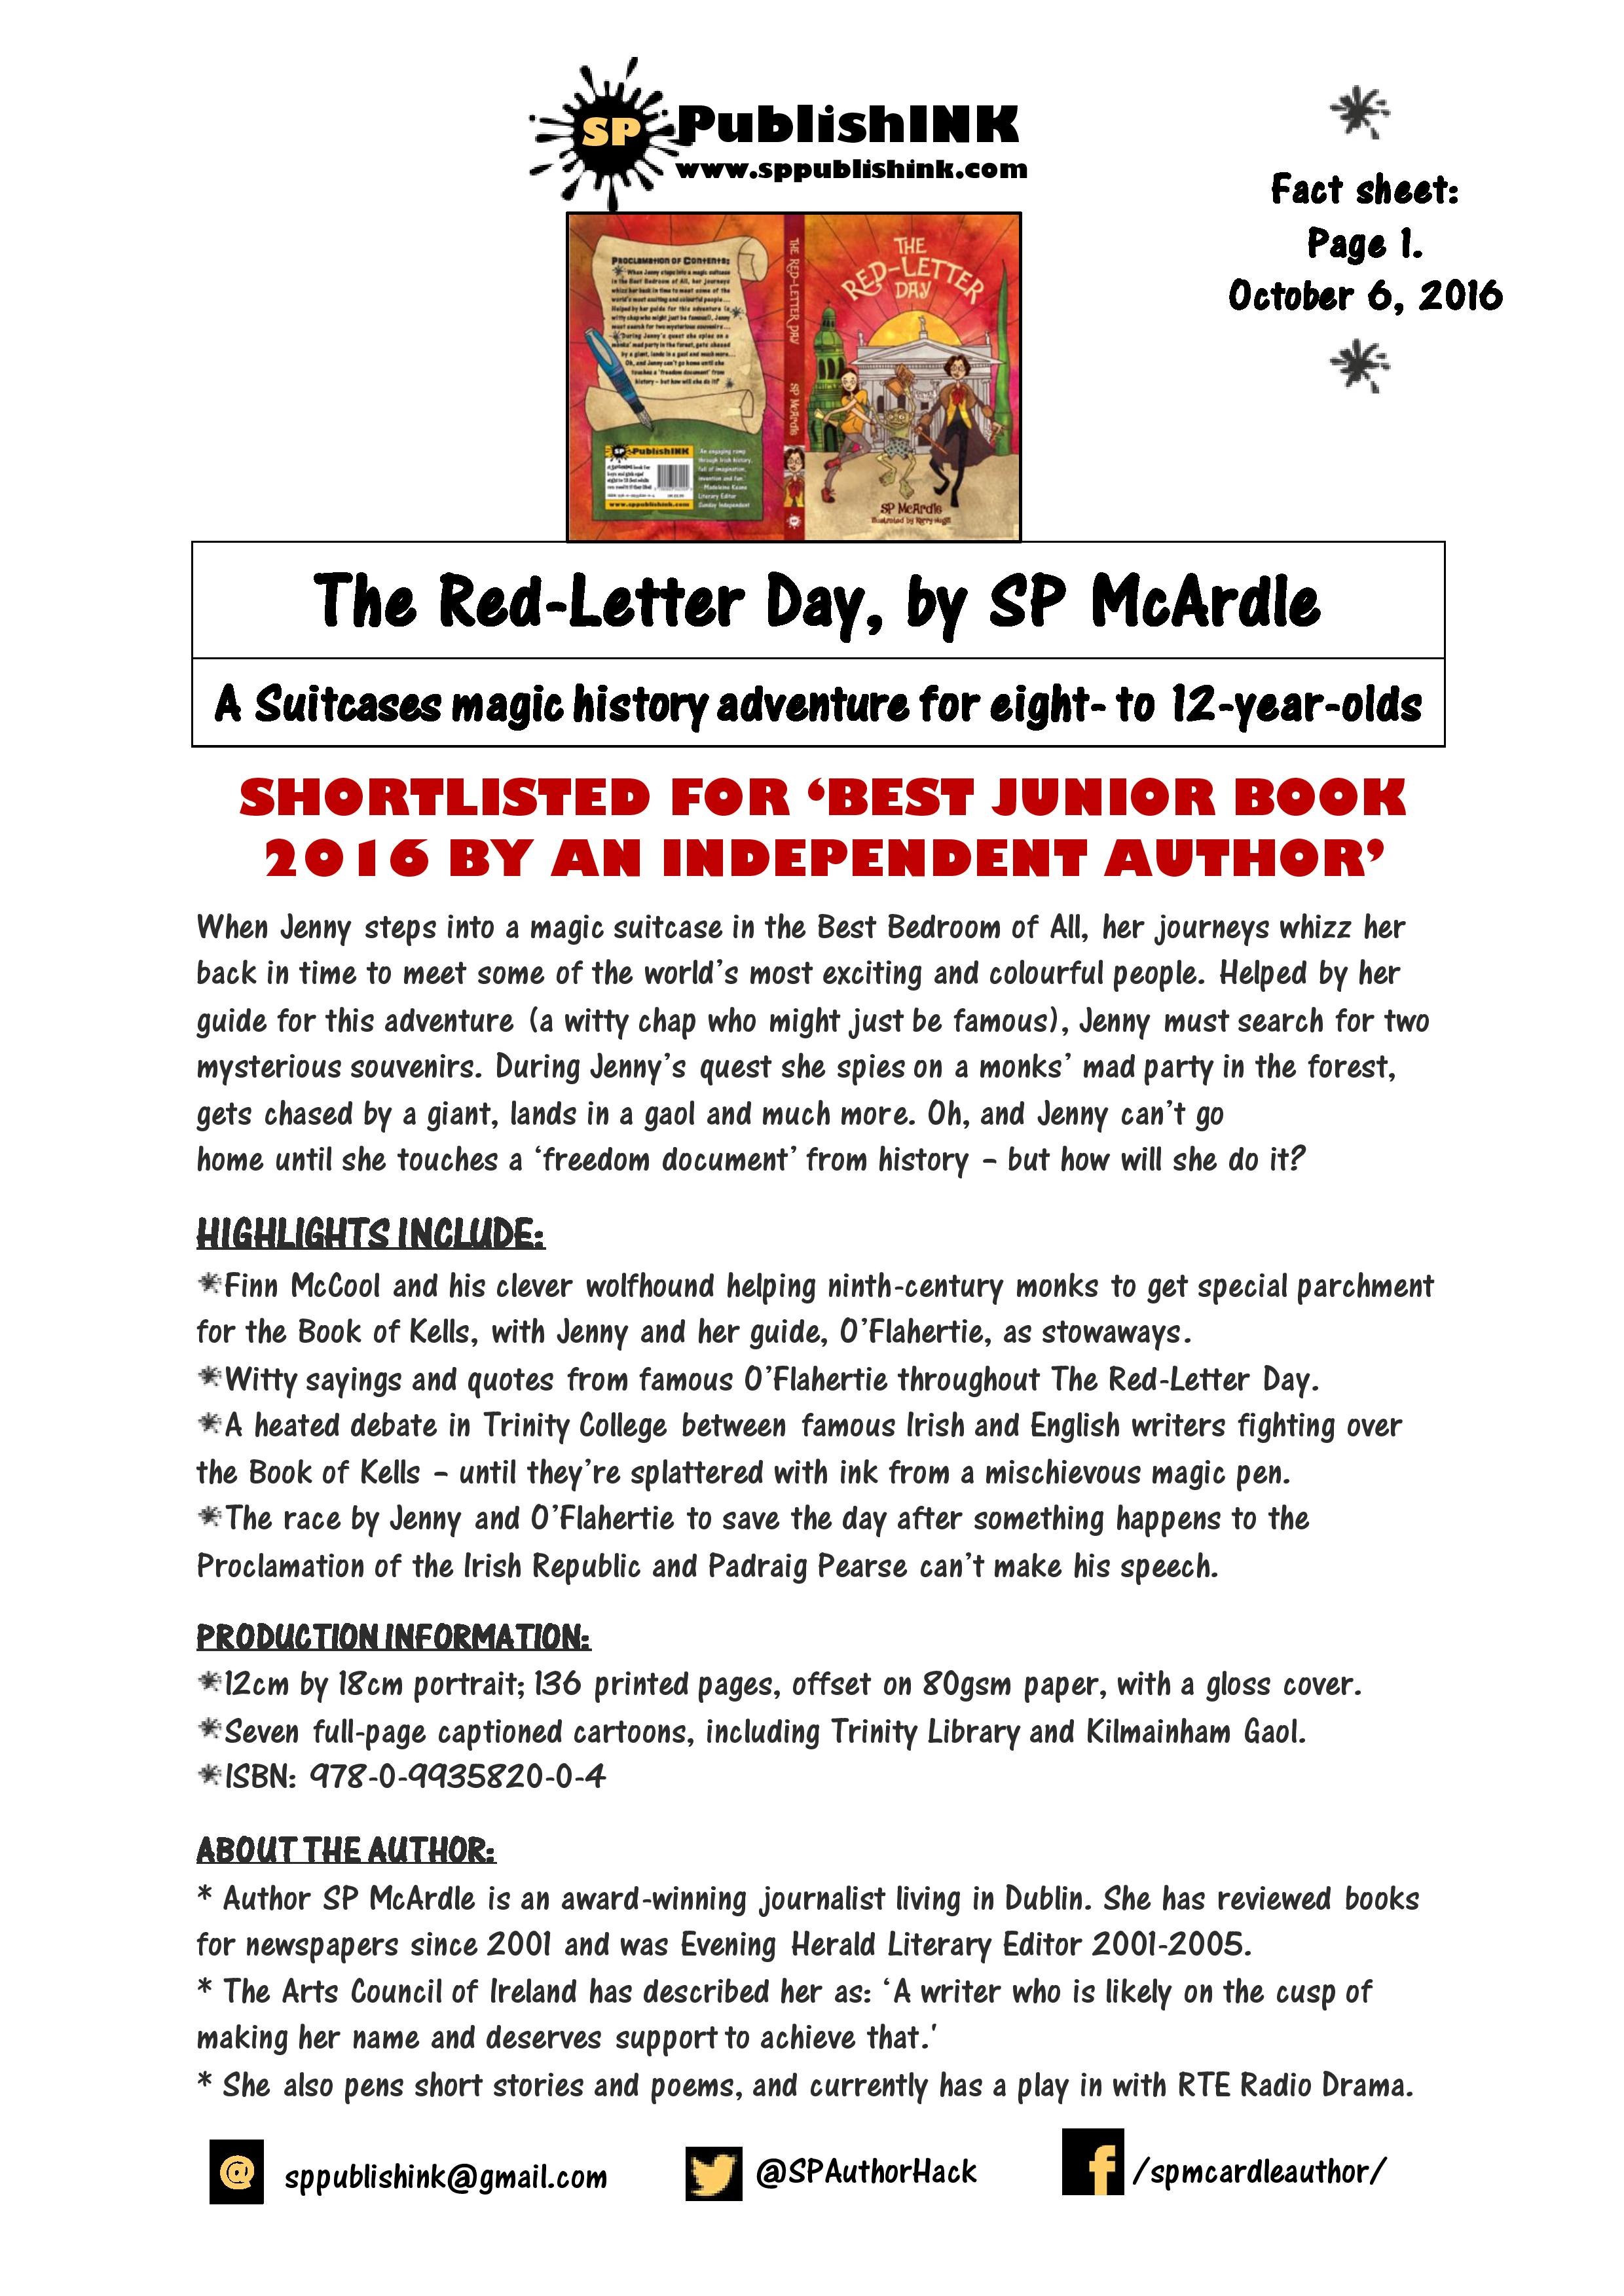 factsheet-the-red-letter-day-page-1-oct-6-2016